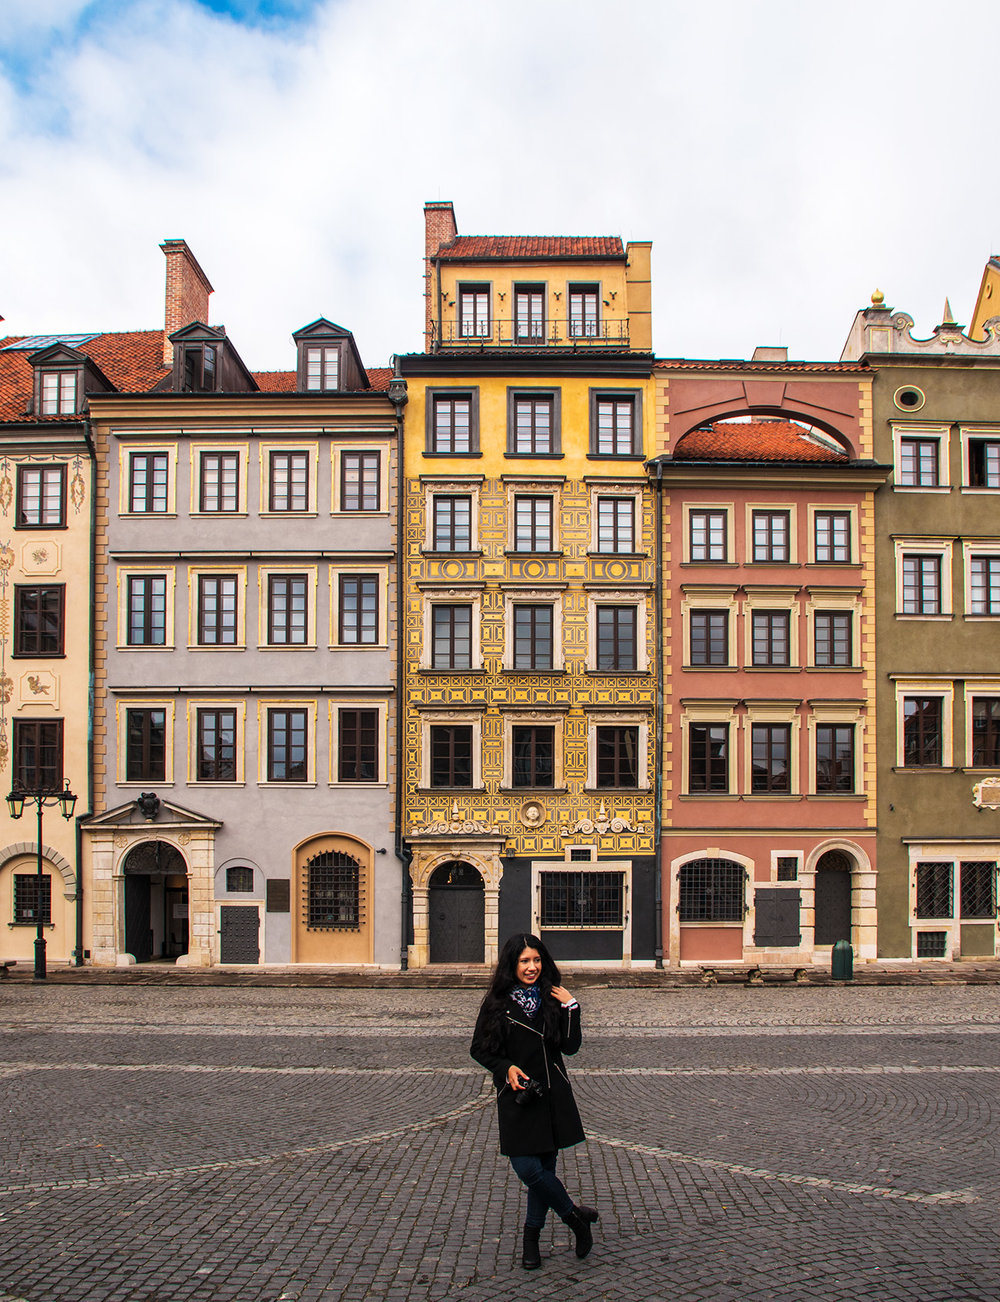 Warsaw: Best Cities to Visit in Poland